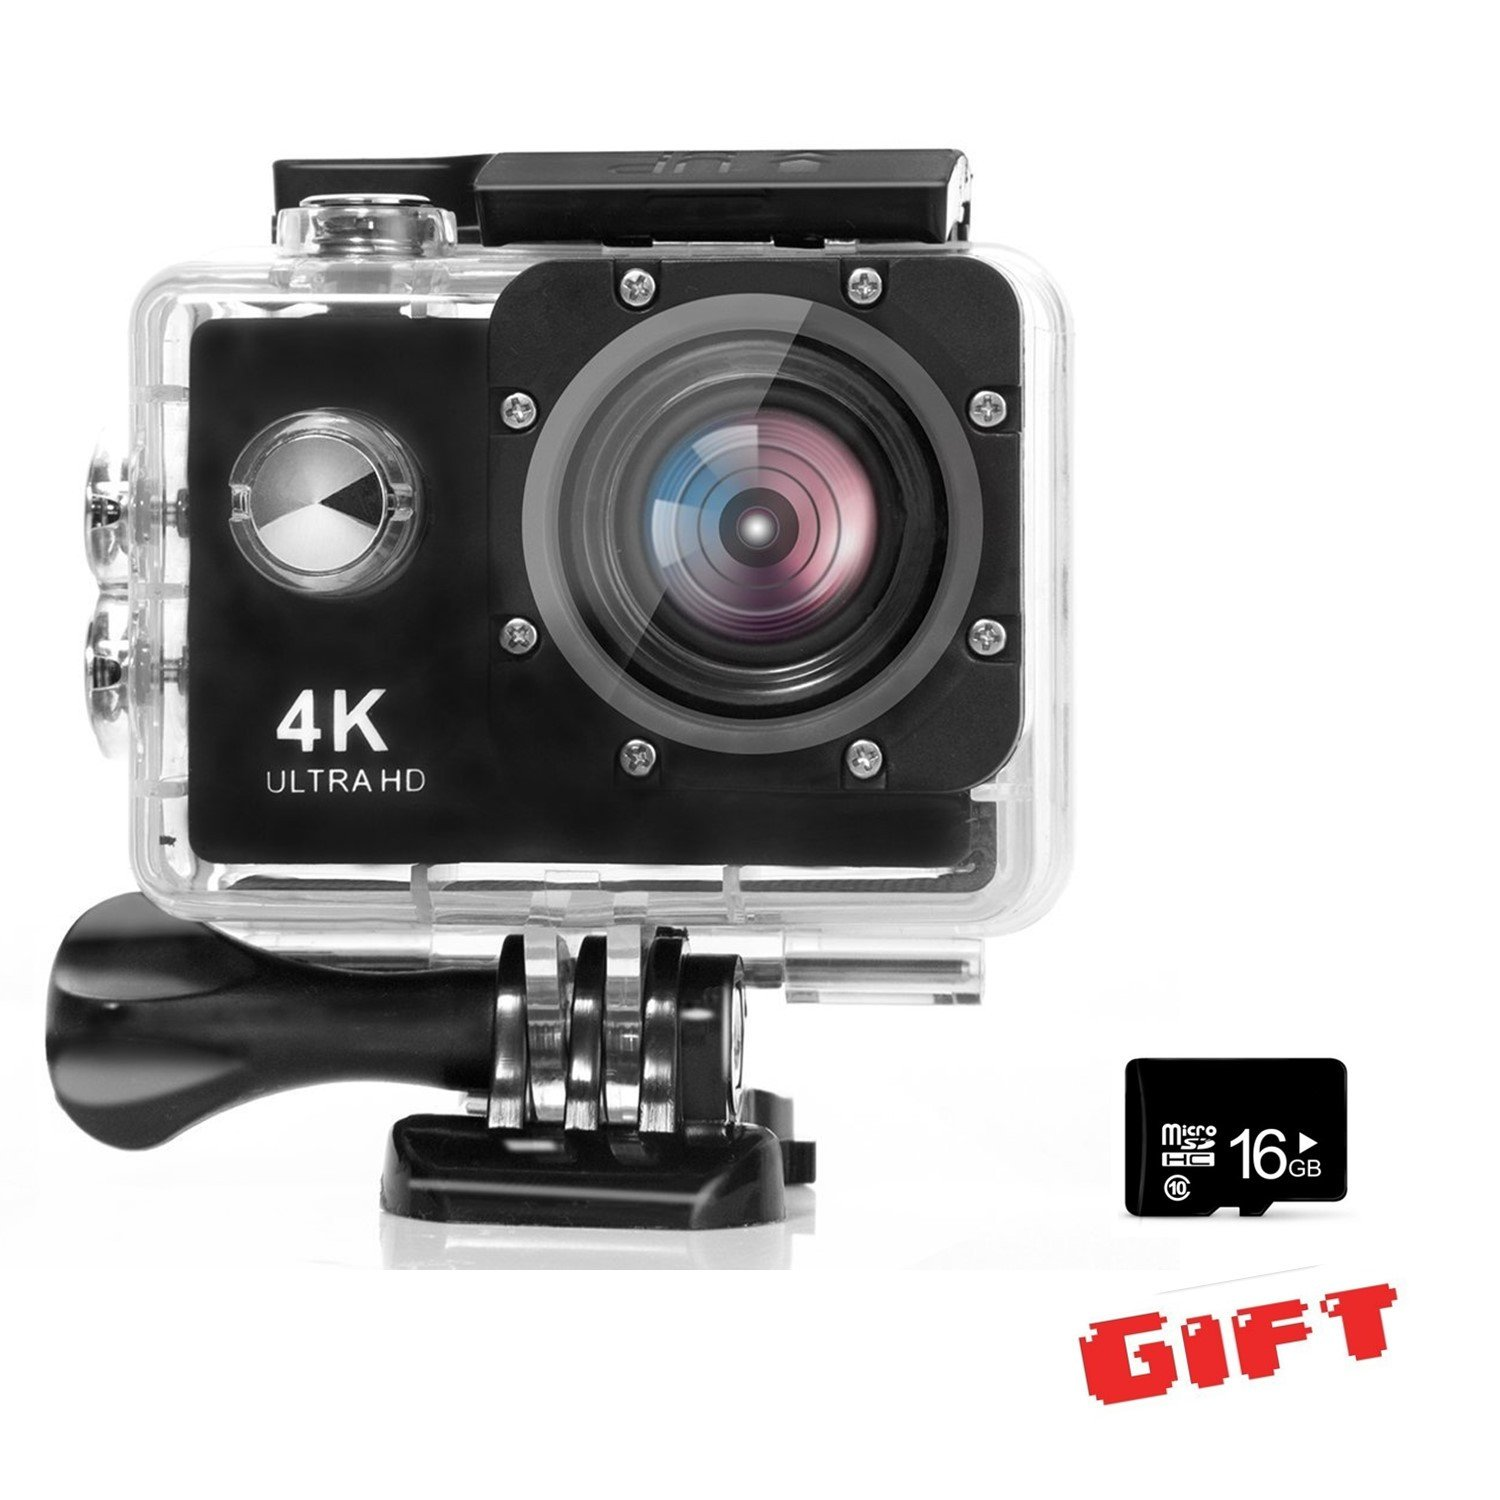 【Free 16G SD Card】Action Camera, DIGOU 4K WIFI Ultra HD Waterproof Sports Action Camera 12MP 2.4G Remote Control 170 Degree Wide Angle 2.0 Inch LCD 30m Underwater with Accessories Kits and Portable Package